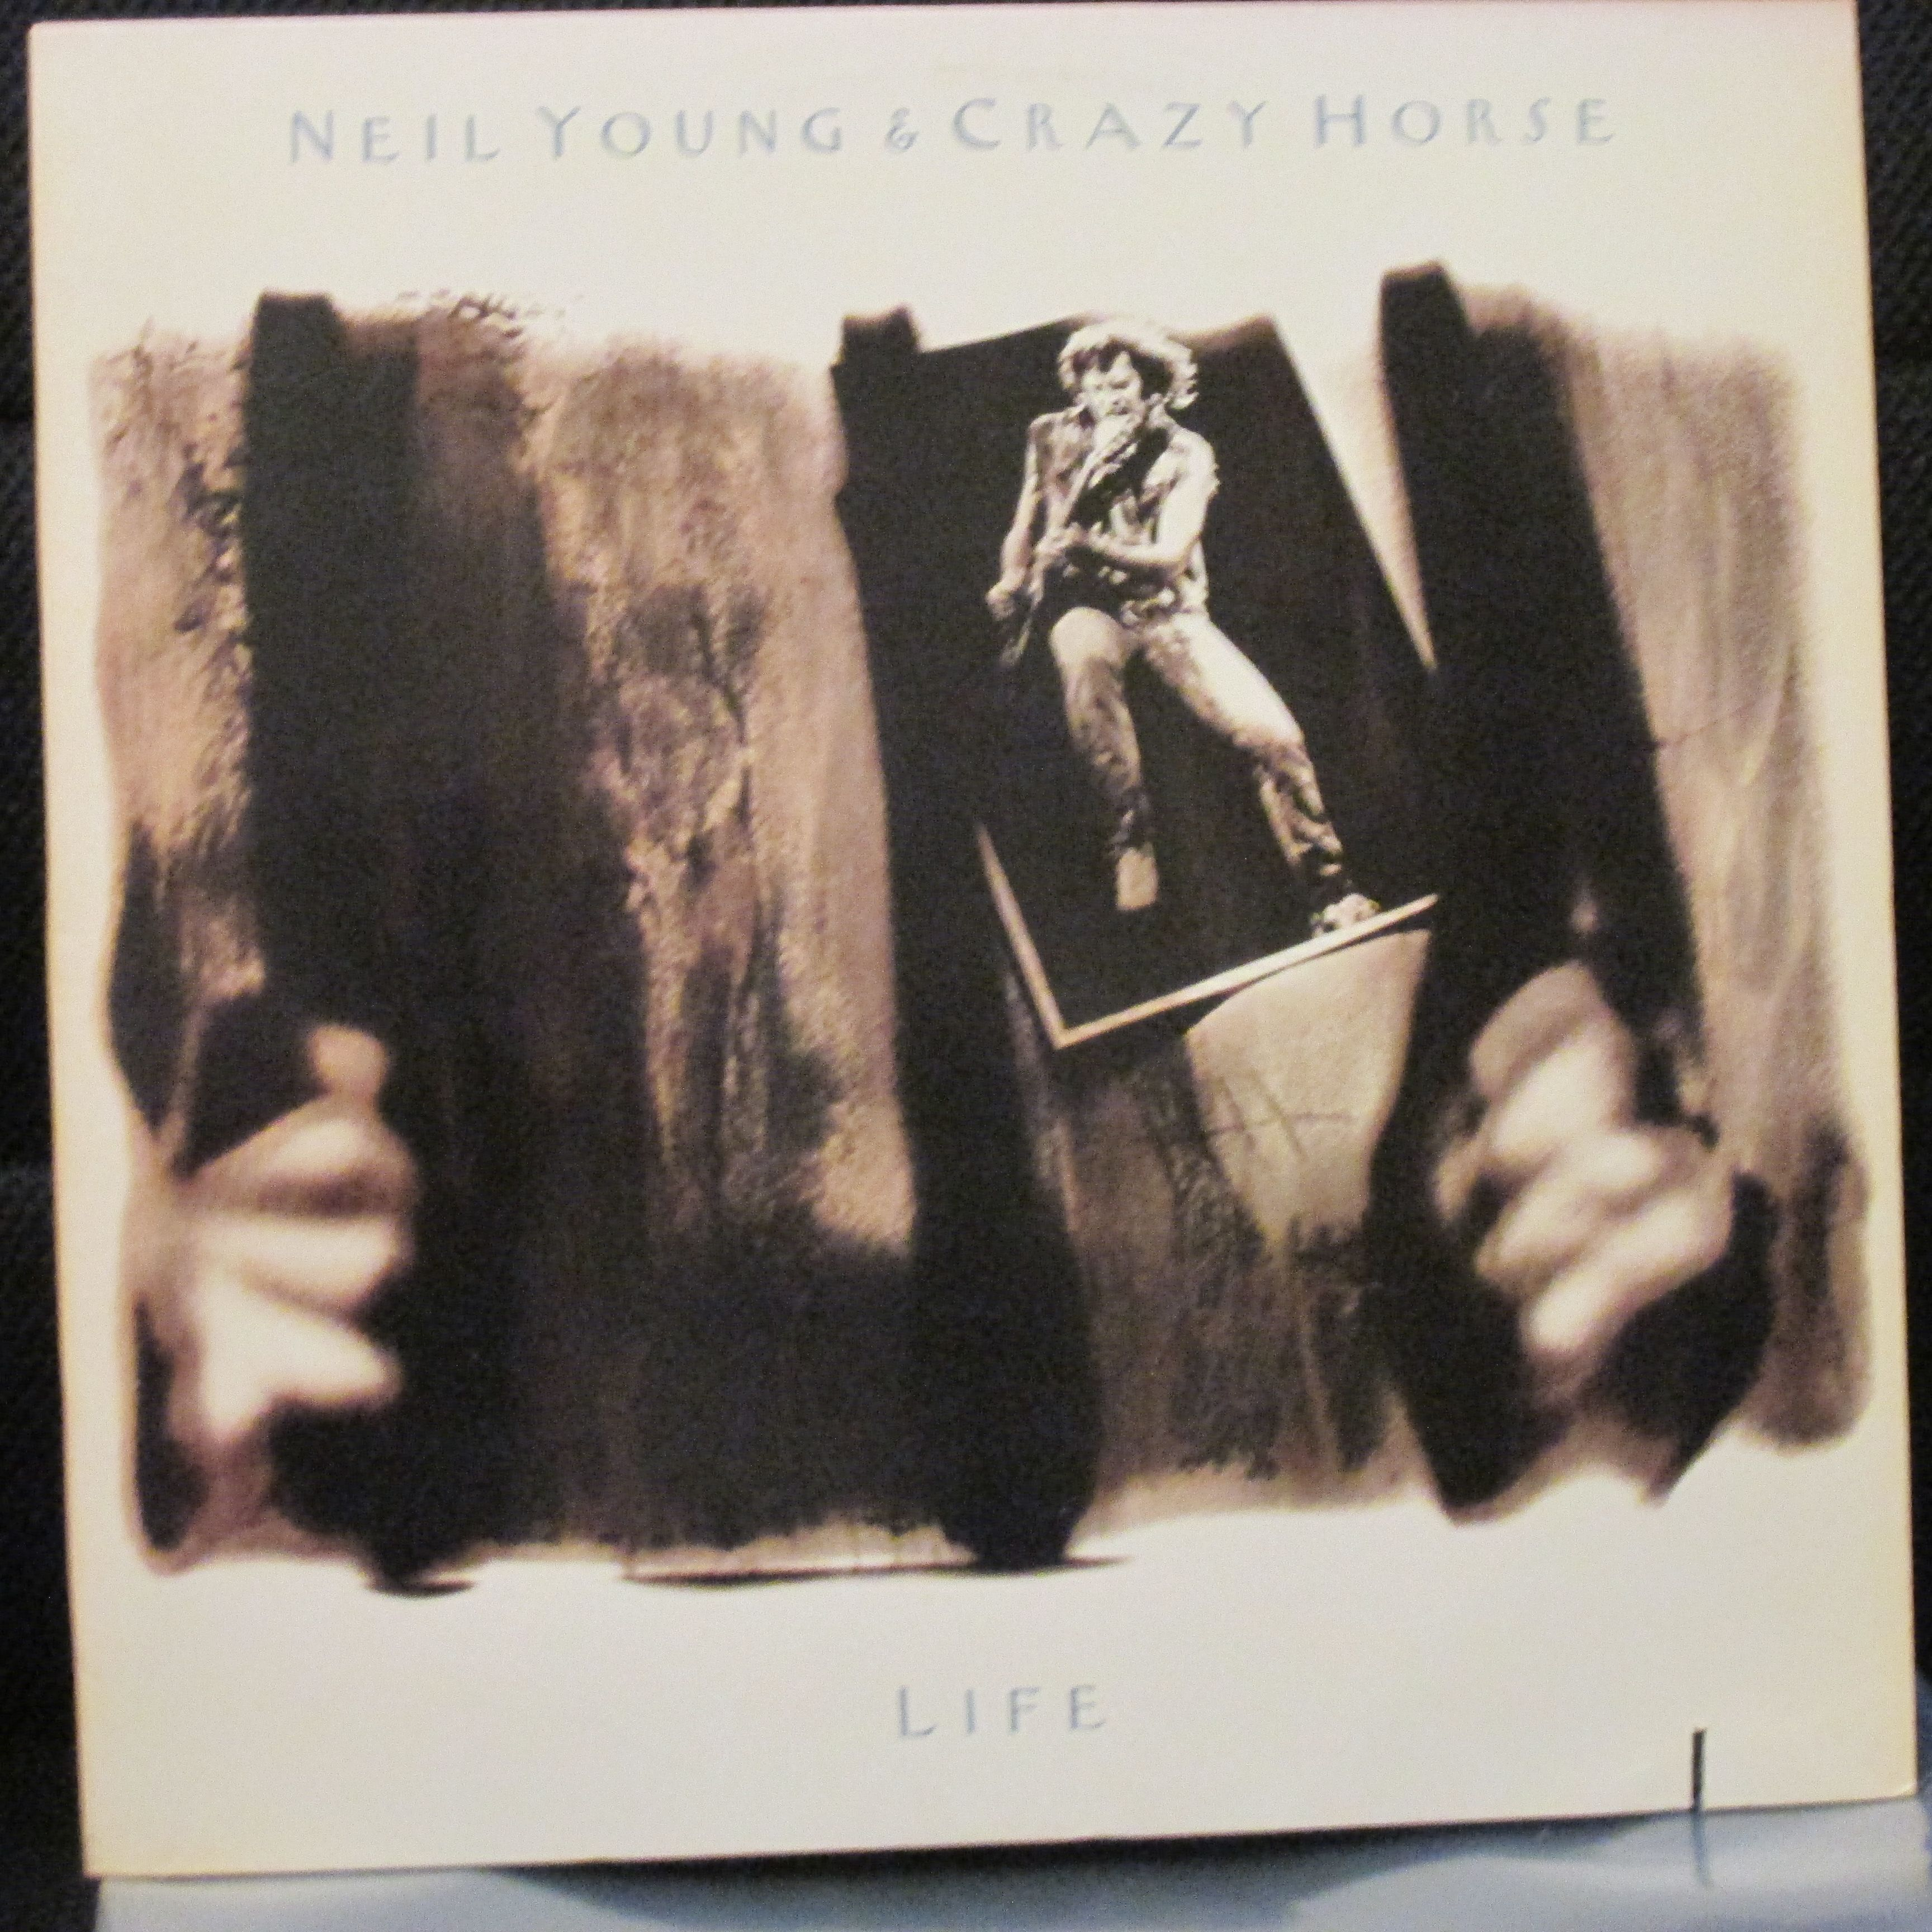 Neil Young & Crazy Horse Life LP undefined